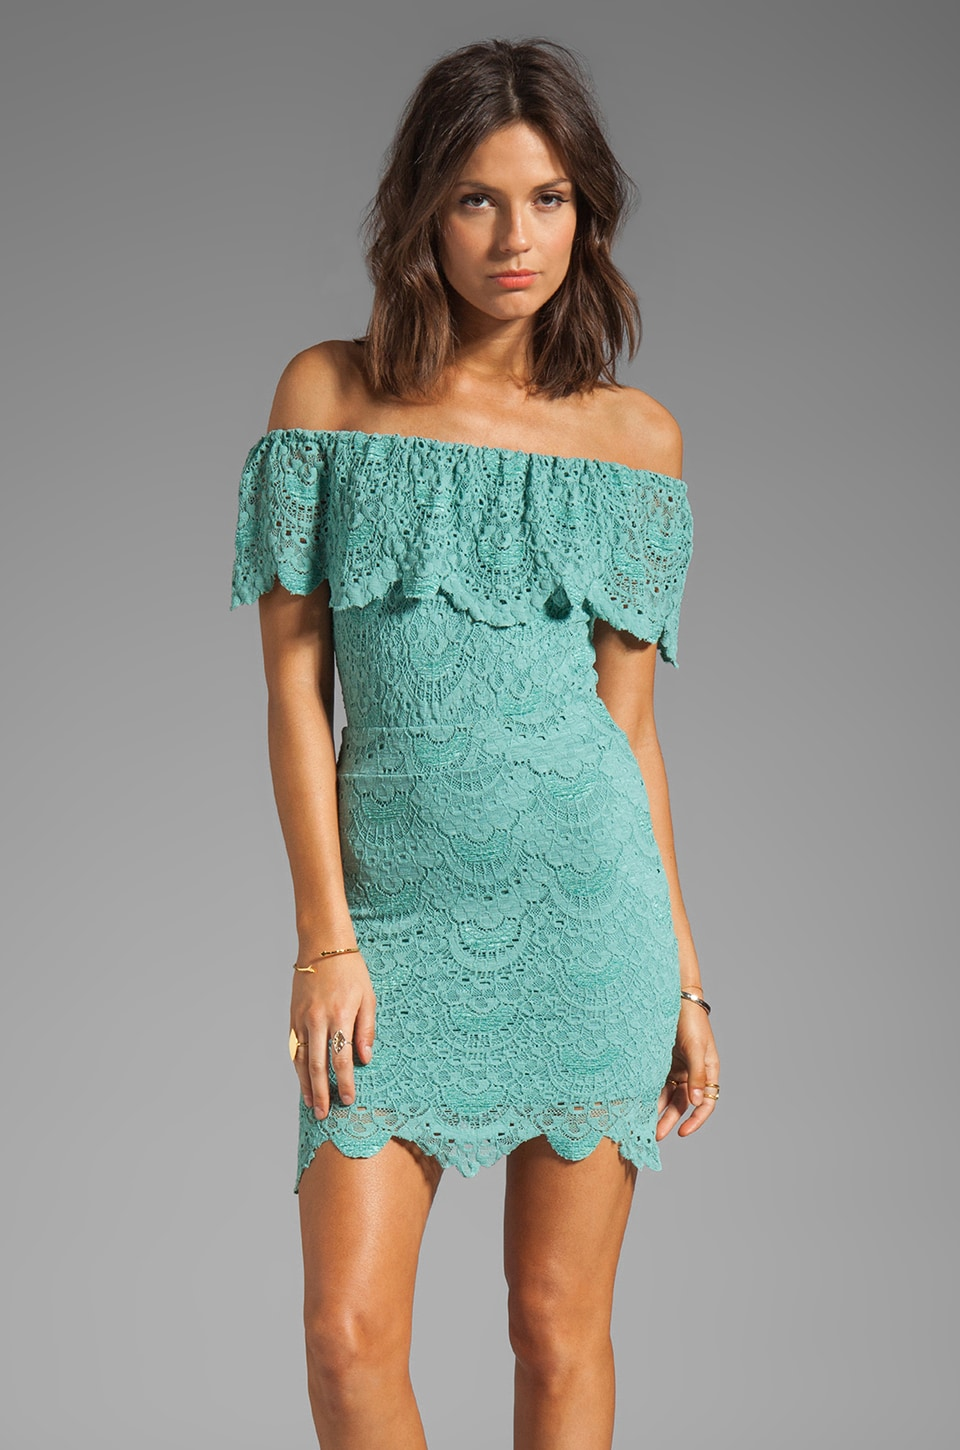 Nightcap Rivierra Dress in Seafoam